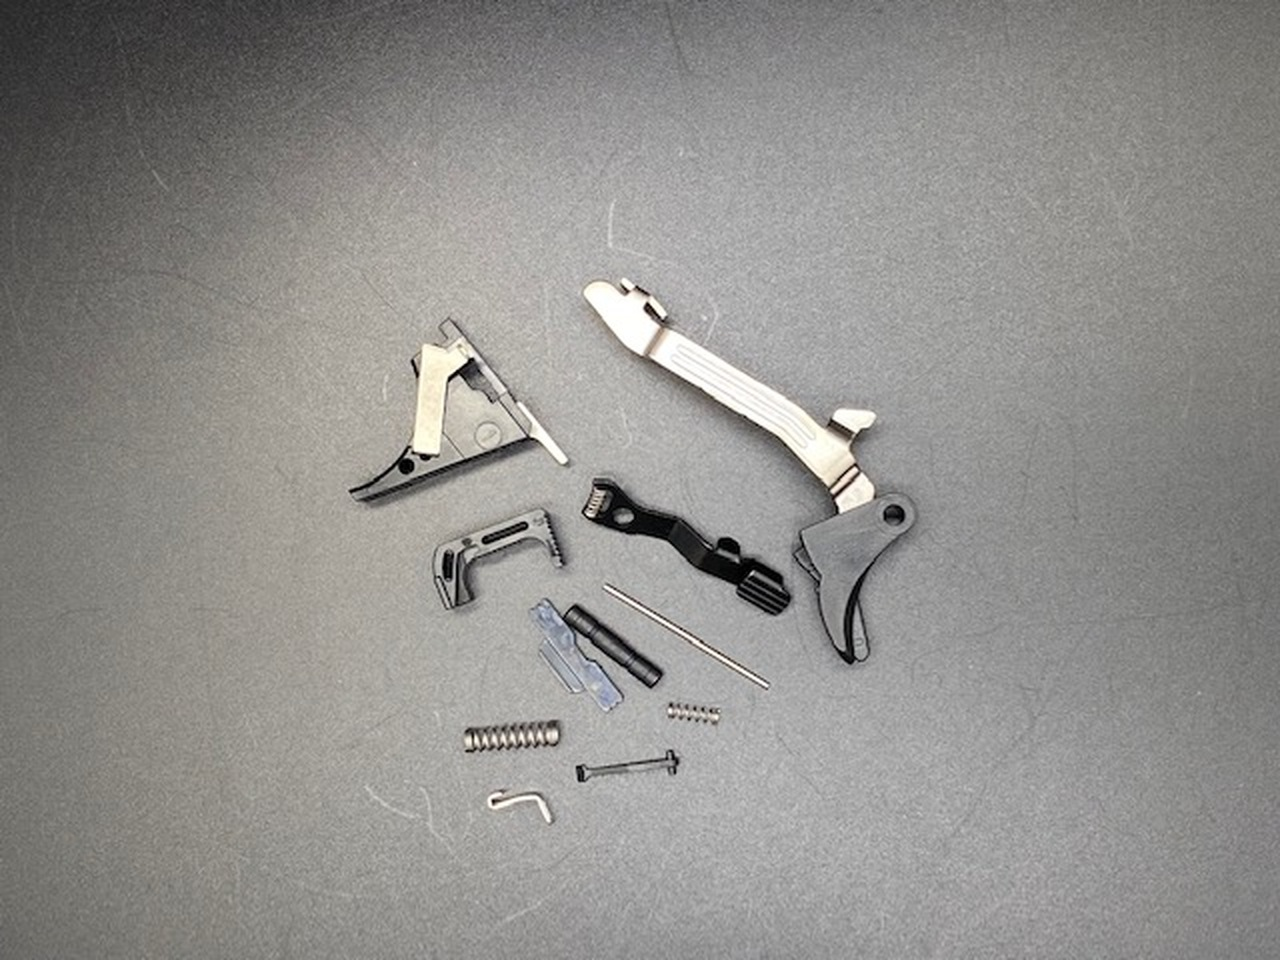 G43 Compatible Lower Parts Kit for SS80/PF9SS